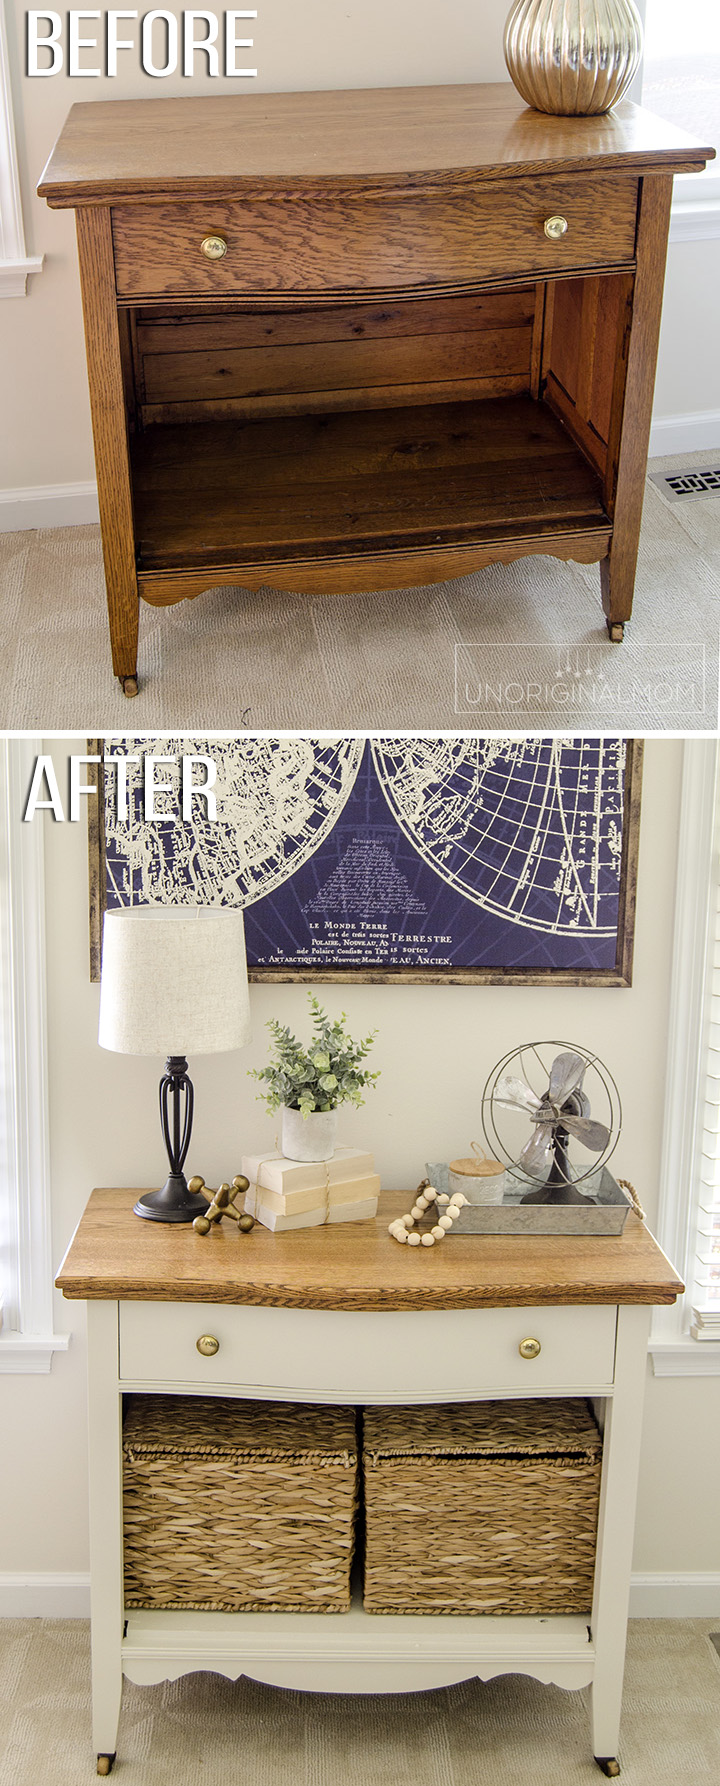 Orc 5 Farmhouse Cabinet Makeover Unoriginal Mom